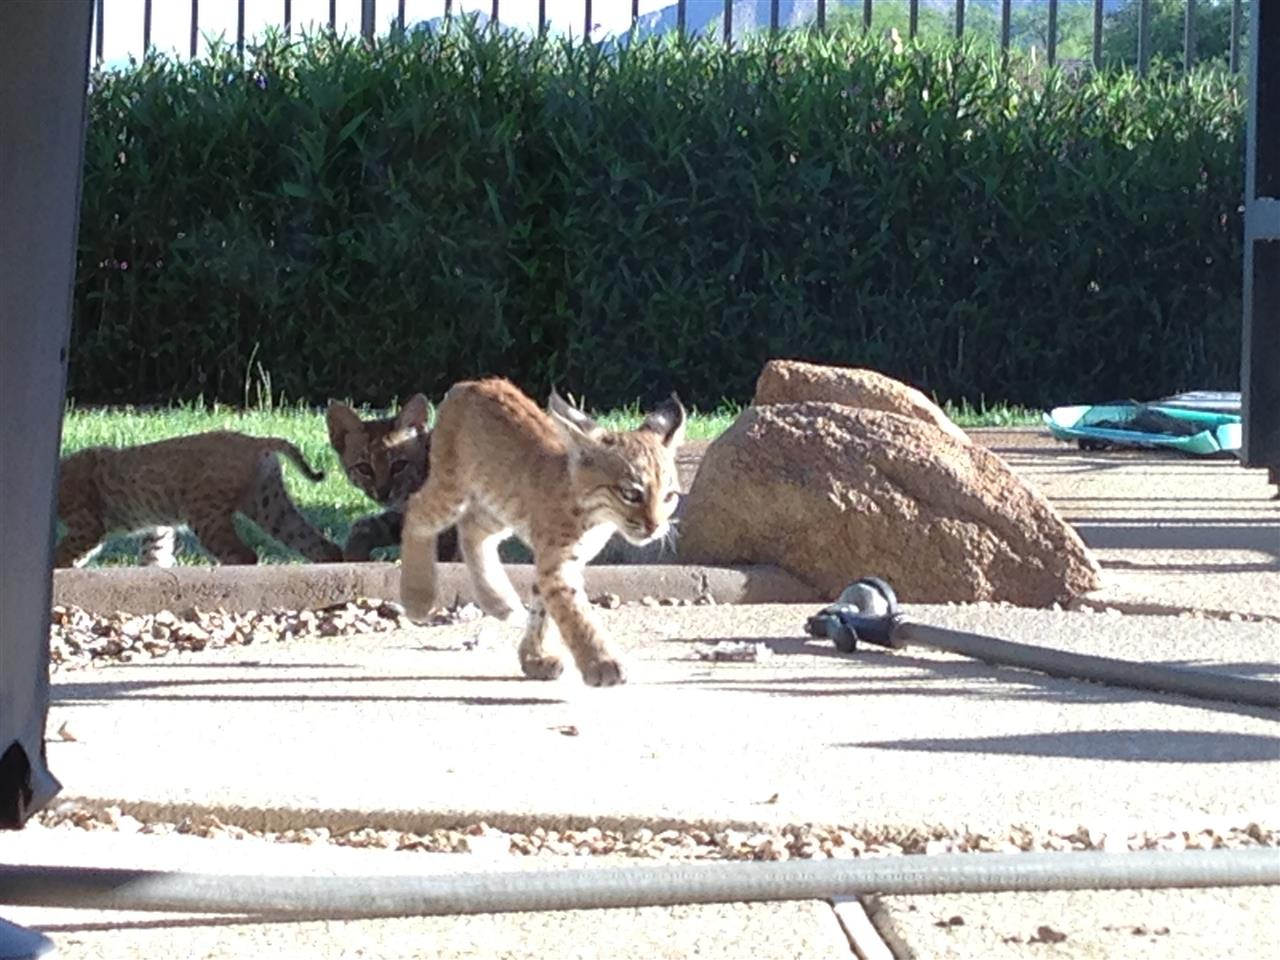 McDowell Mountain Preserve, Scottsdale, AZ  Daily, Wildlife visits neighbors who live in a nature preserve. A mother bobcat gave birth to triplets in the backyard and we watched as they played and learned to hunt.